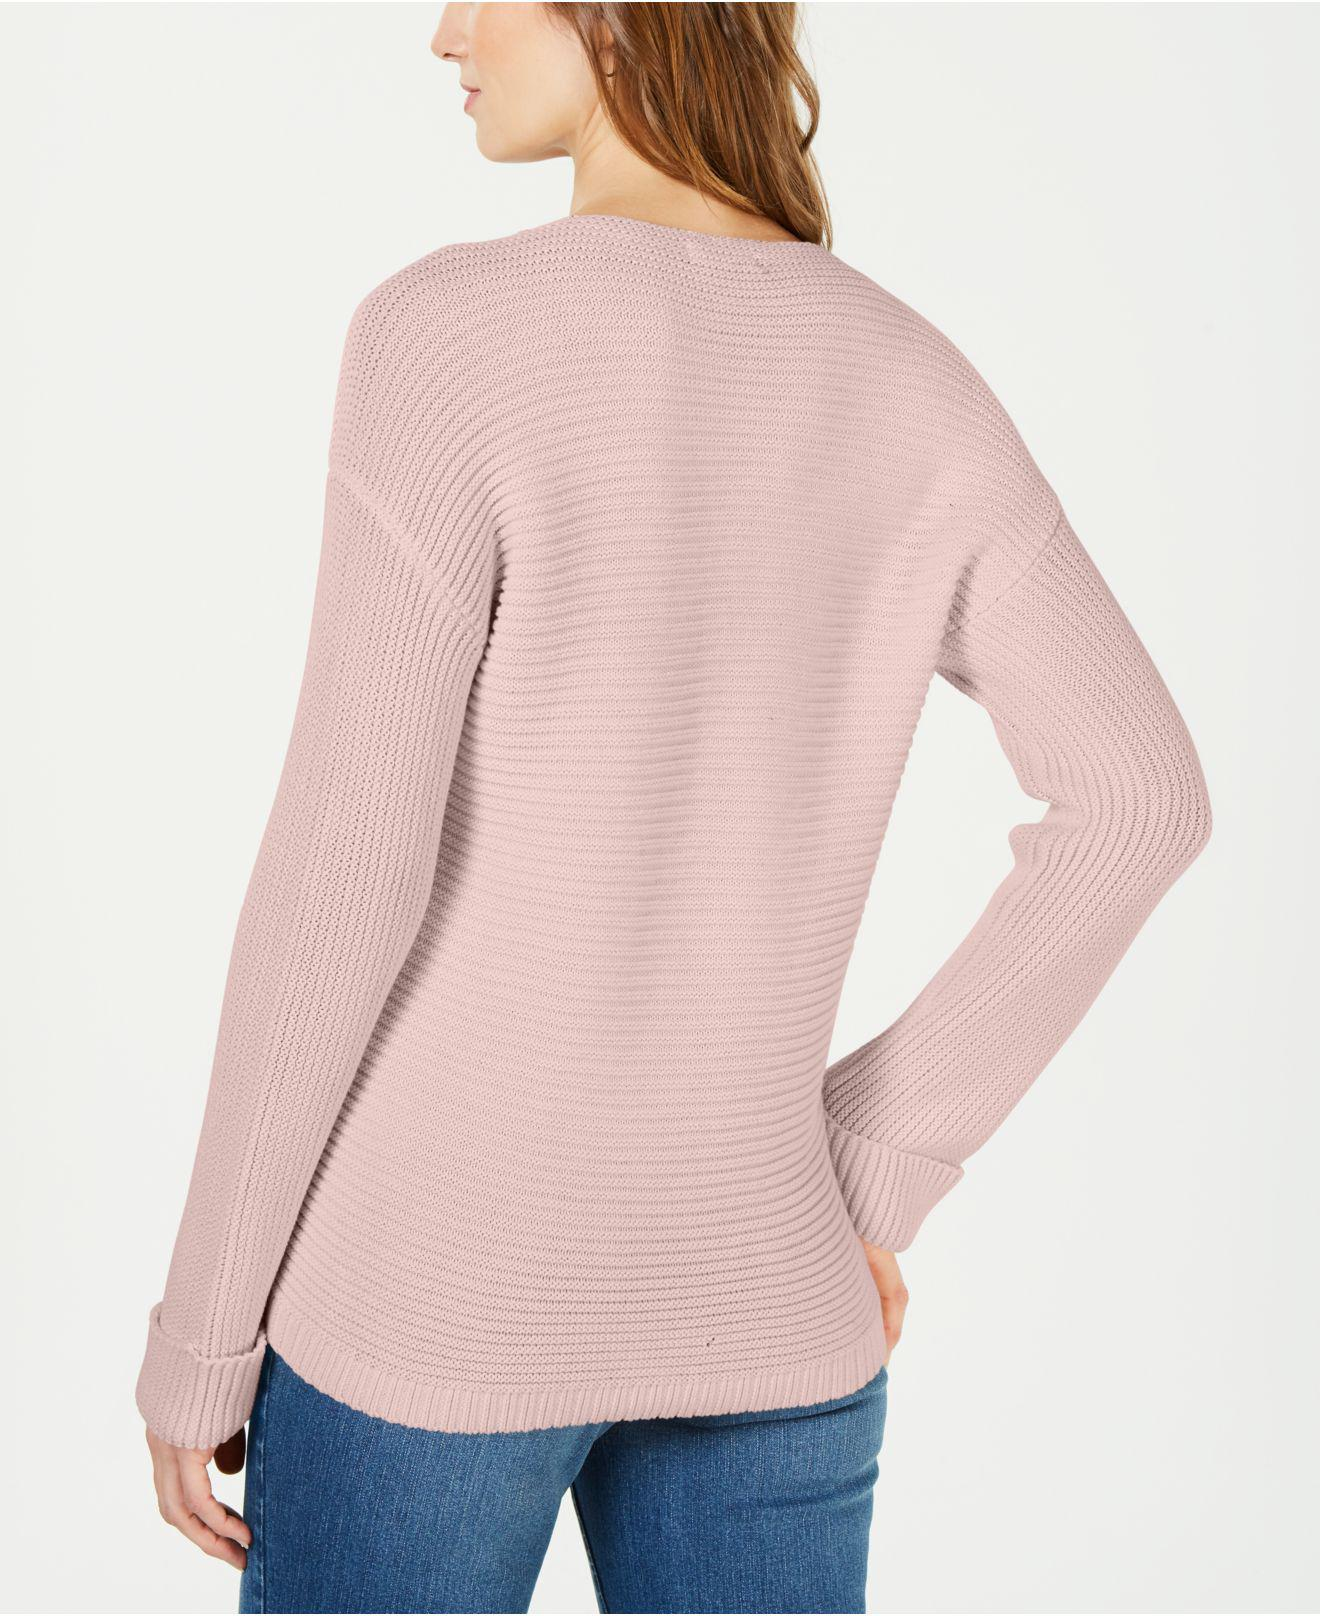 Cuffed Sweater: Charter Club Cotton V-neck Cuffed-sleeve Sweater, Created